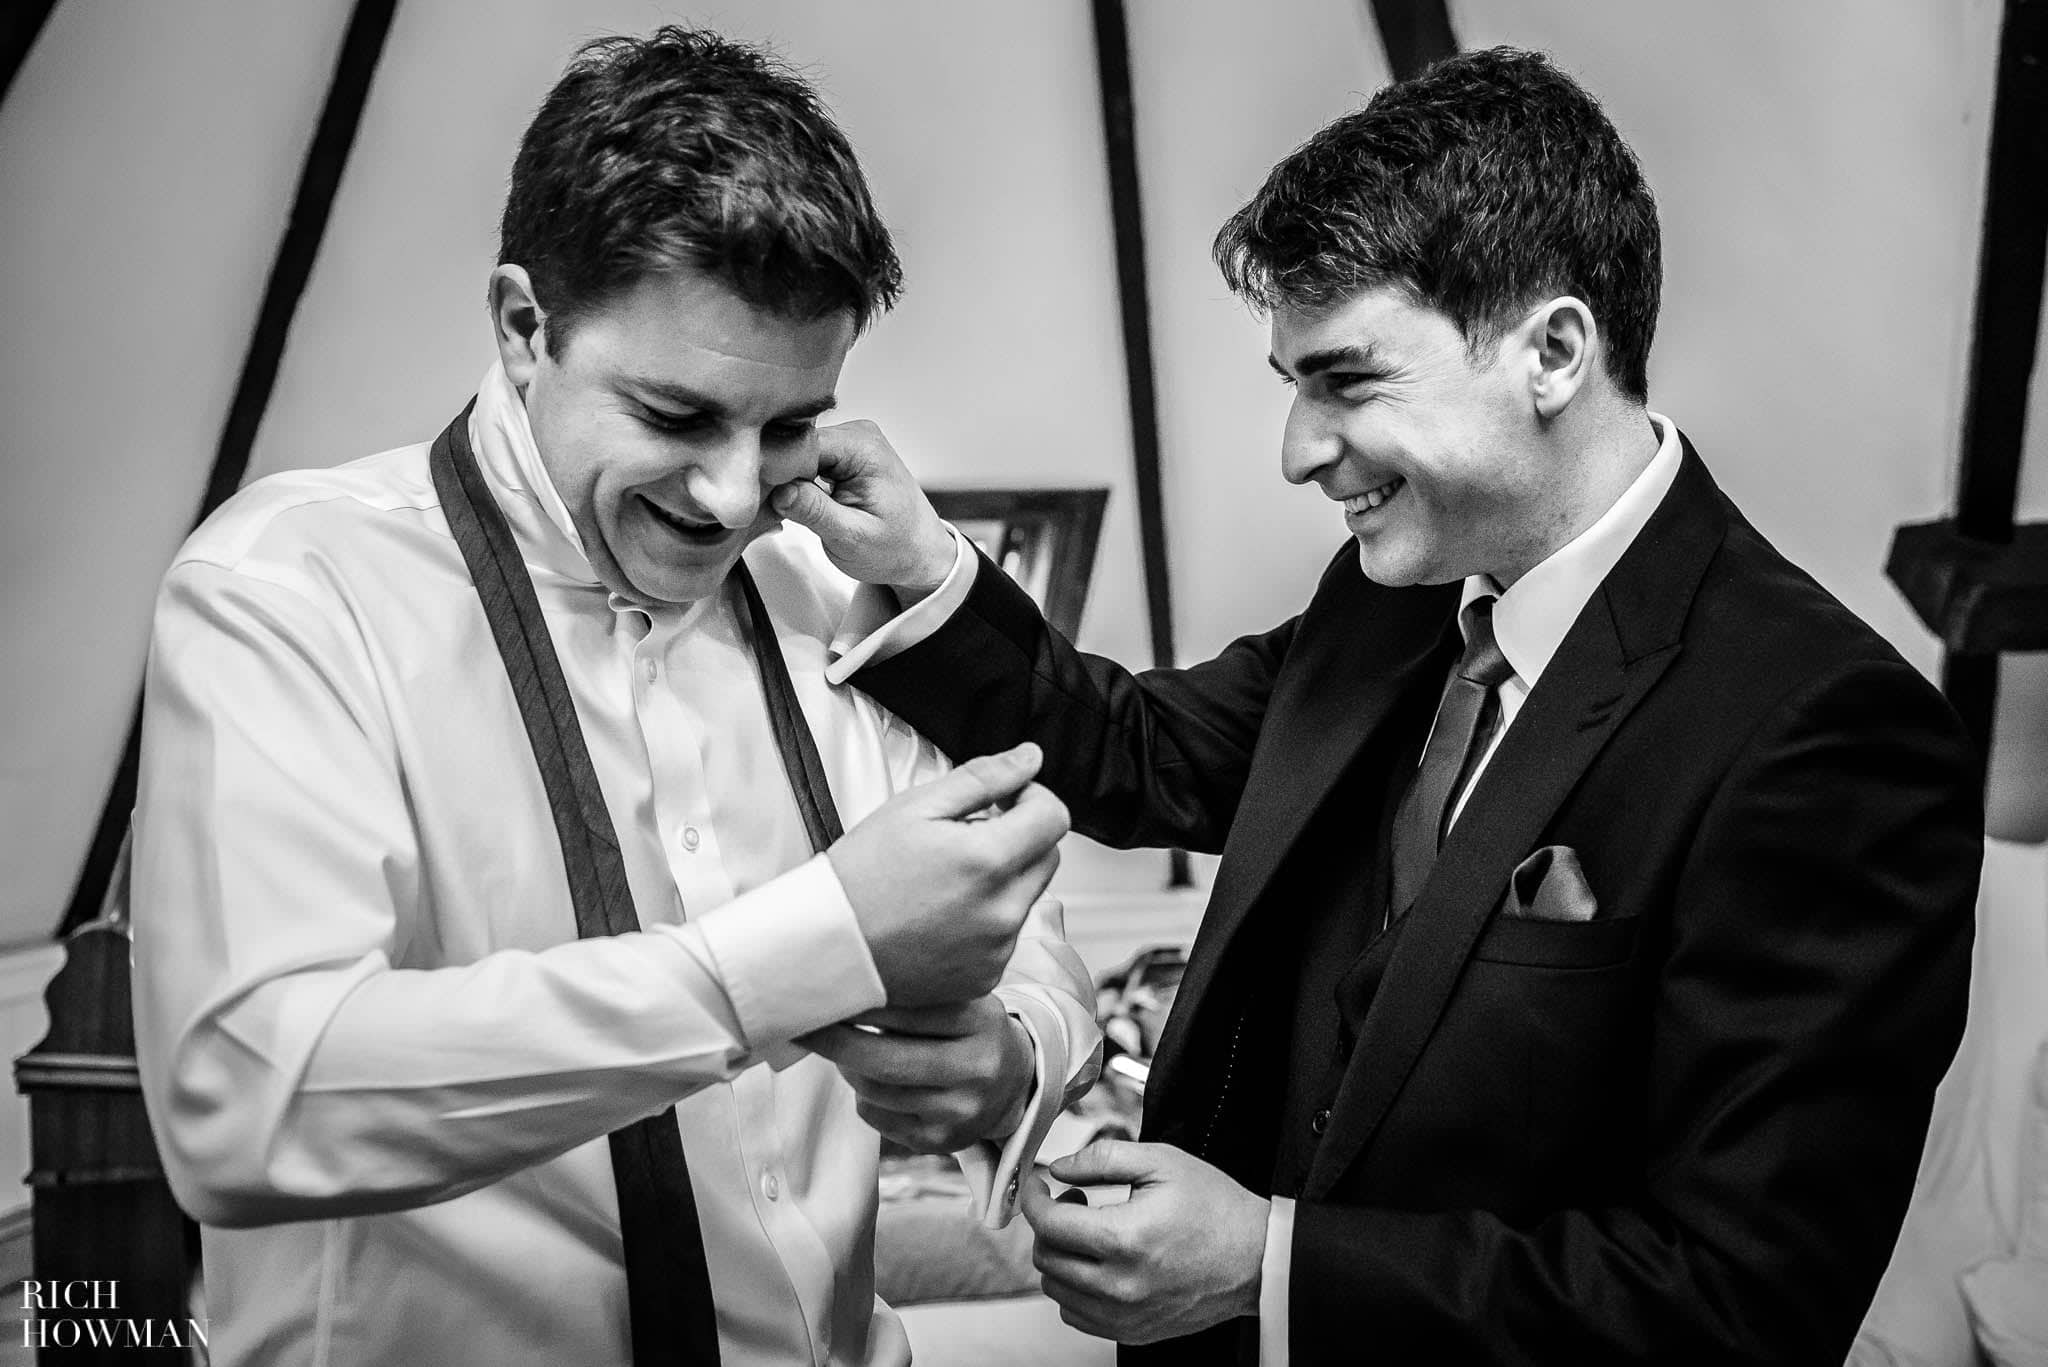 Brothers preparing for a Huntsham Court wedding with one teasing the other